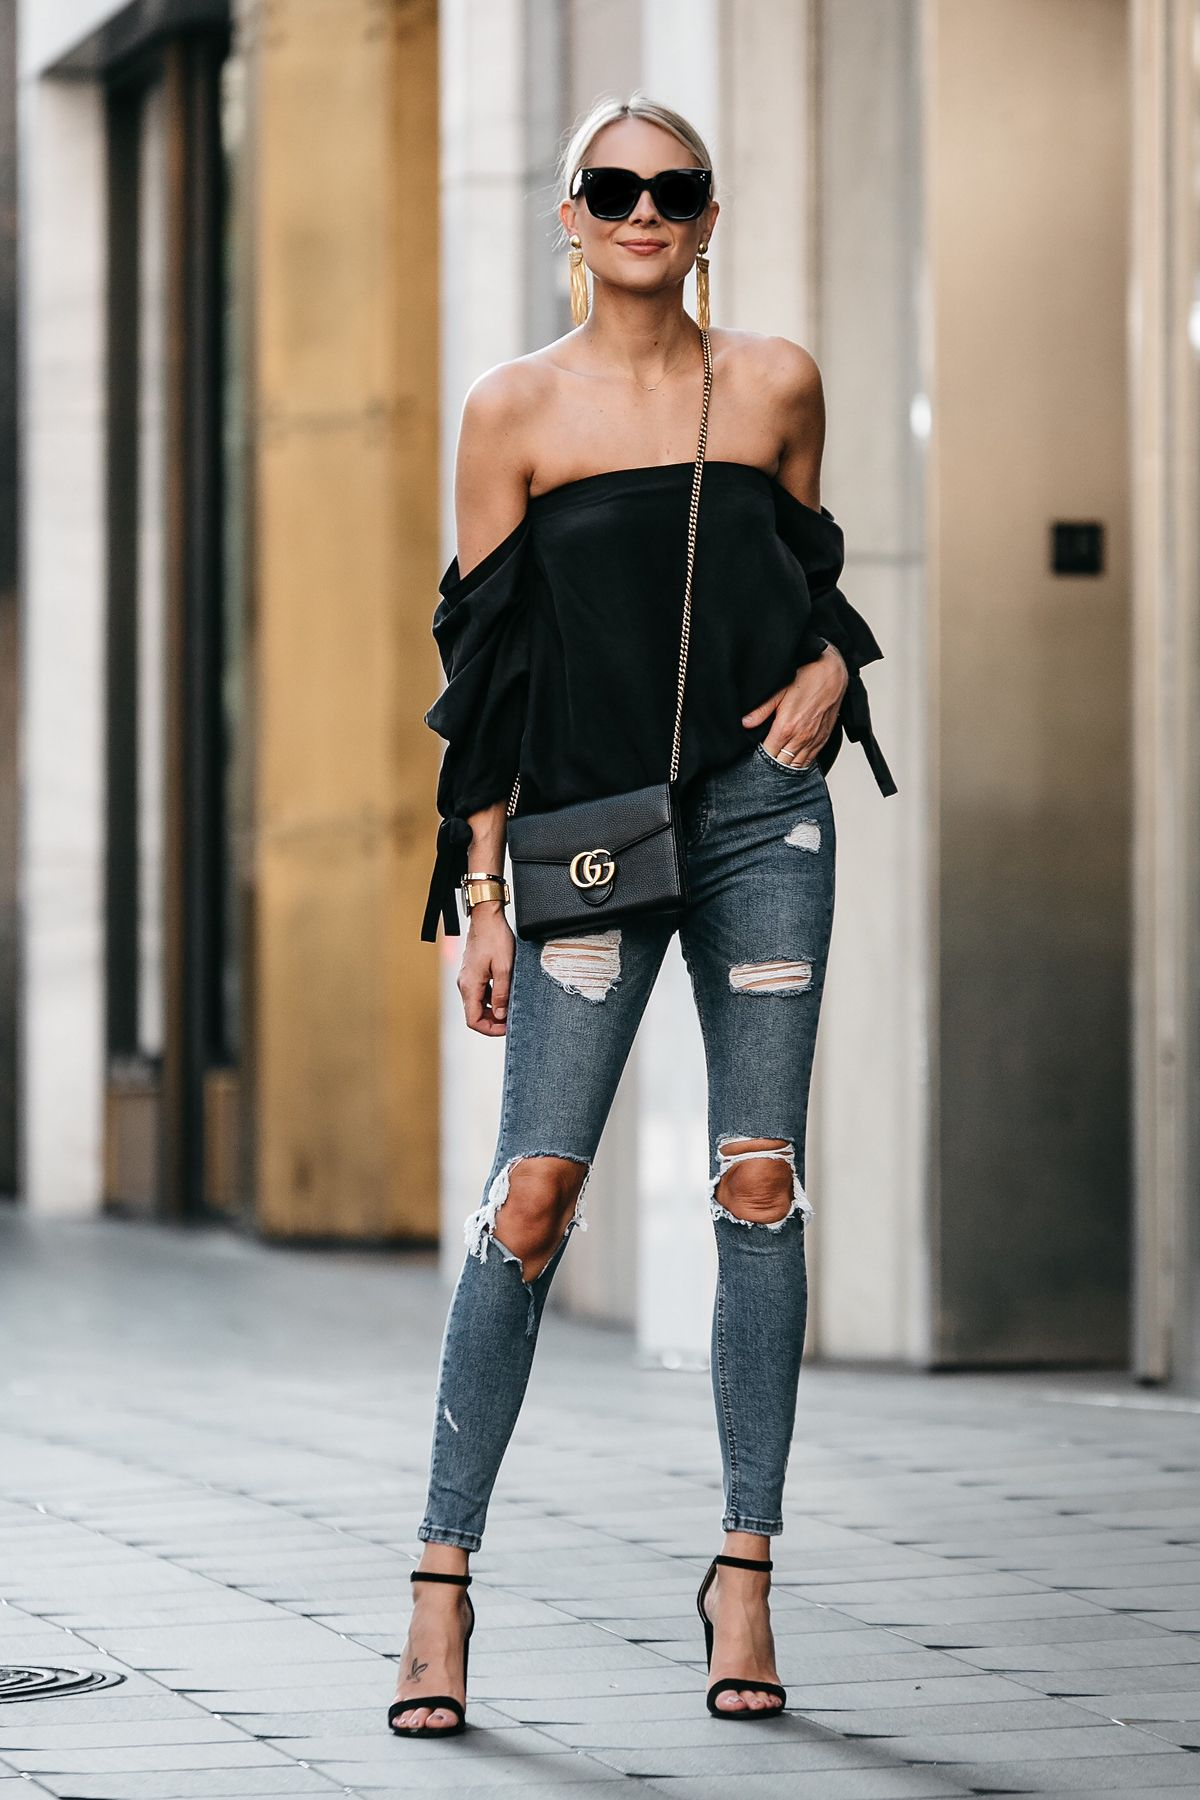 cc8ca8e813195 Blonde Woman Wearing Club Monaco Black Off-the-Shoulder Top Denim Ripped  Skinny Jeans Outfit Gucci Marmont Handbag Black Ankle Strap Heeled Sandals